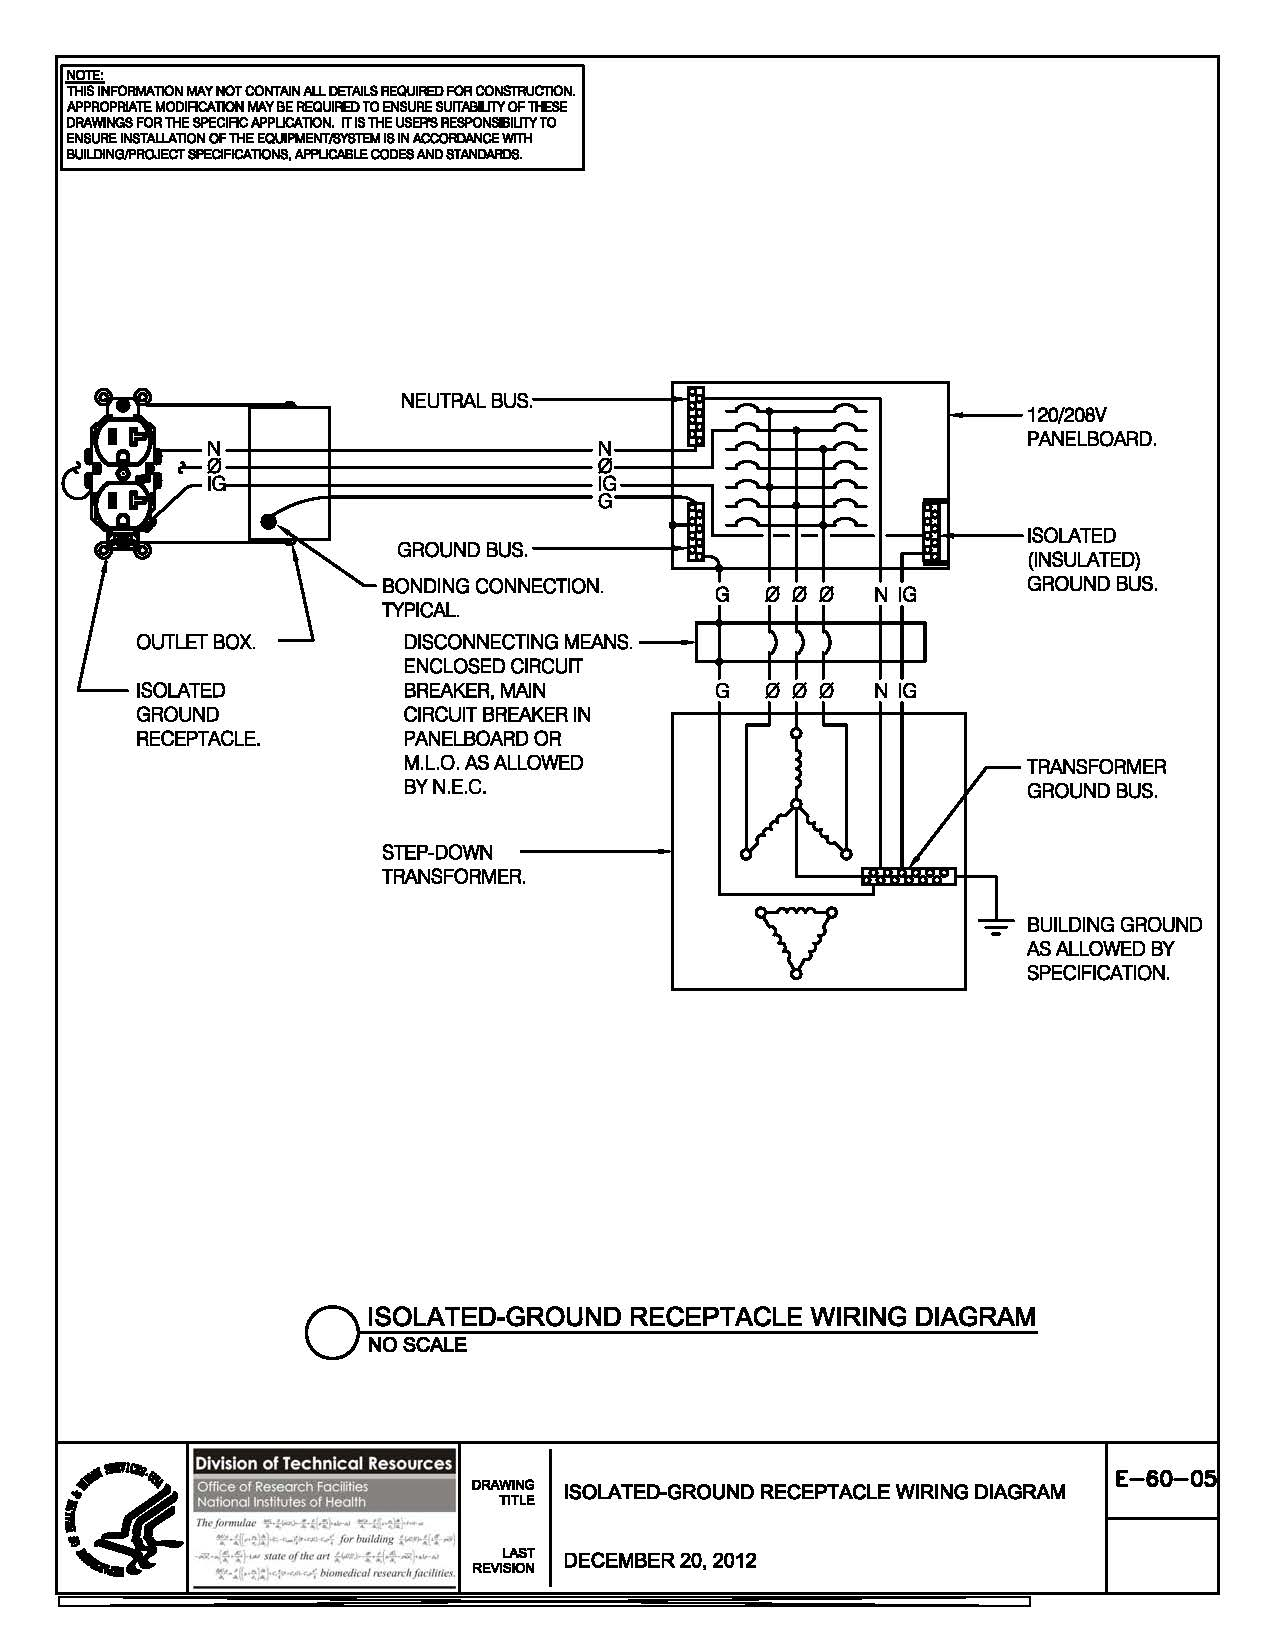 outdoor lamp post wiring diagram Collection-Outdoor Lamp Post Wiring Diagram Awesome Nih Standard Cad Details 5-r